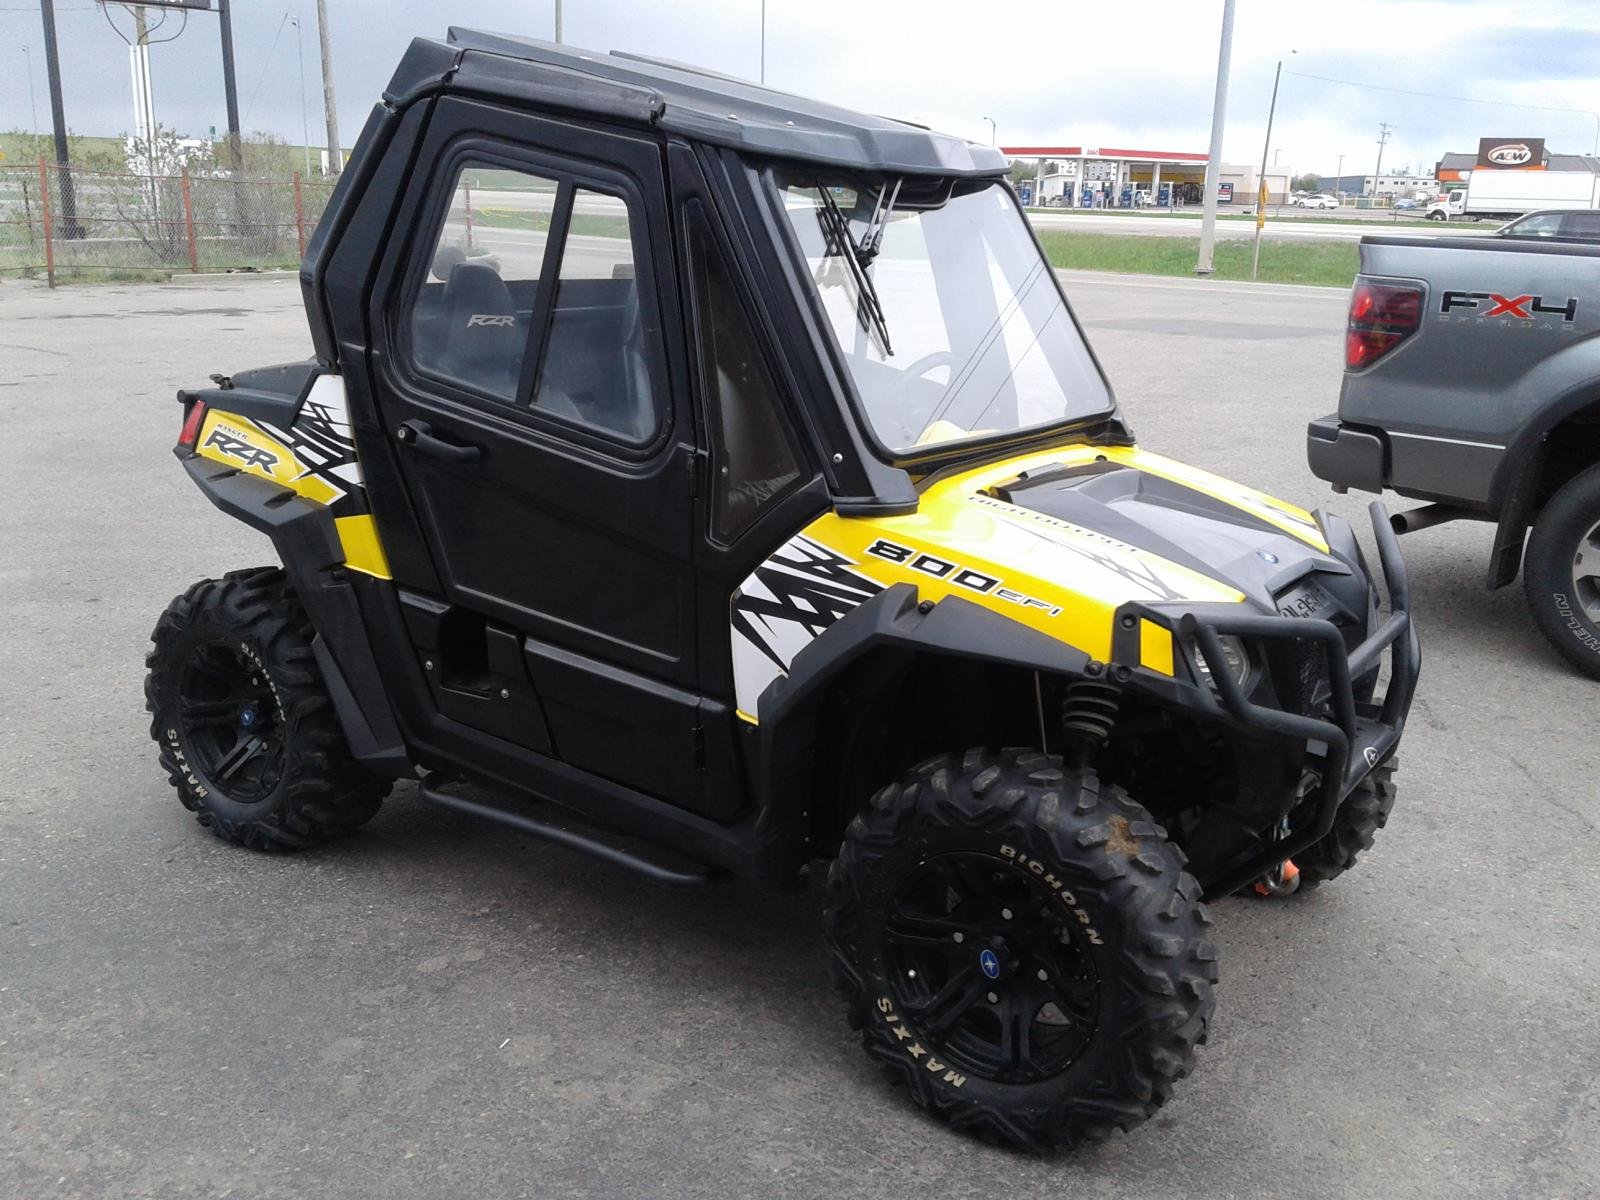 hight resolution of 2011 ranger rzr 800 screamin yellow le polaris industries 2011 ranger rzr 800 screamin yellow le